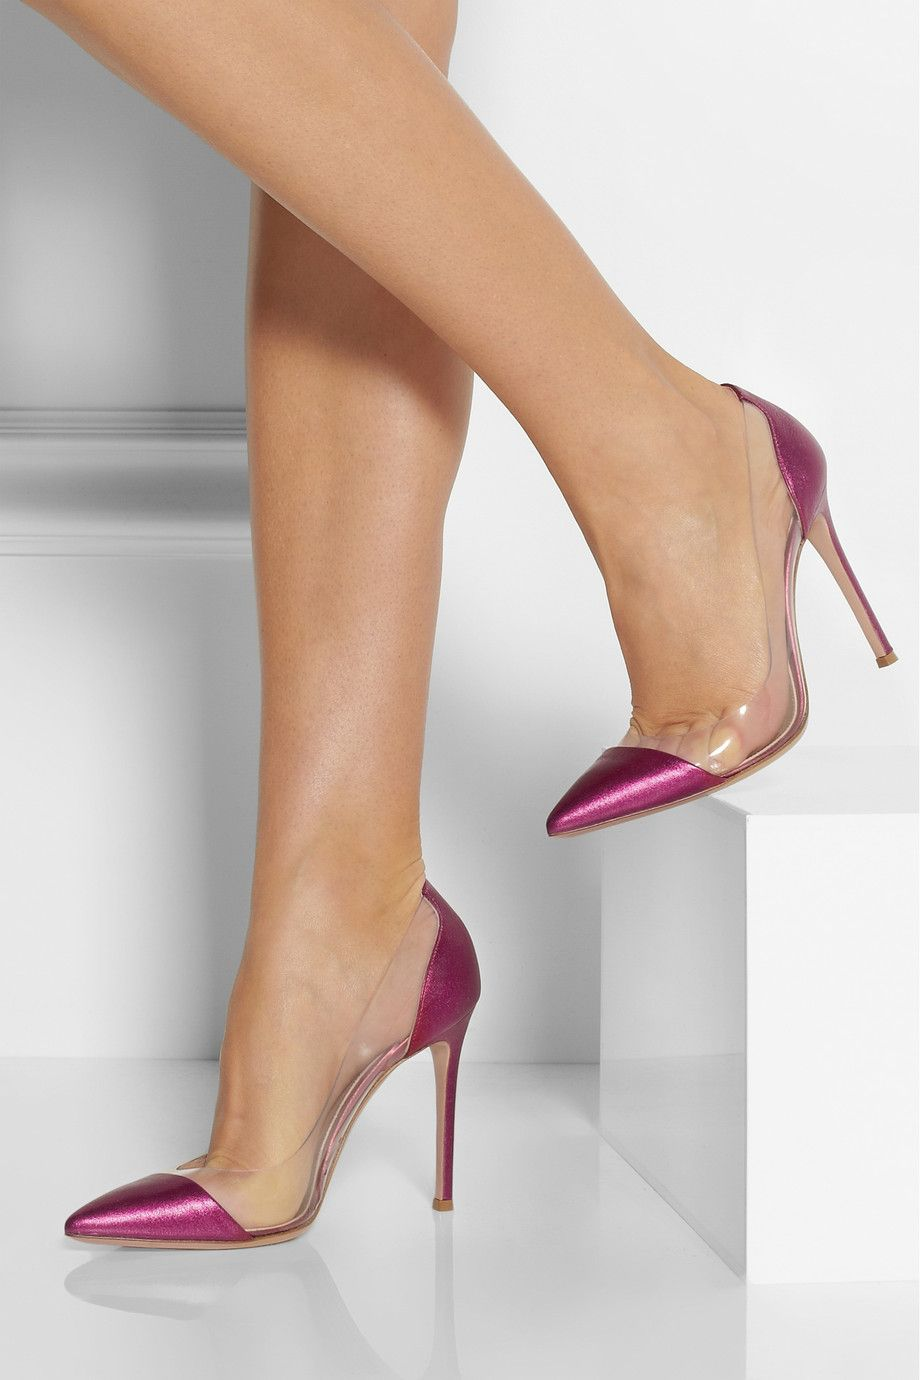 ... Women Shoes Store. Gianvito Rossi  055318acab75